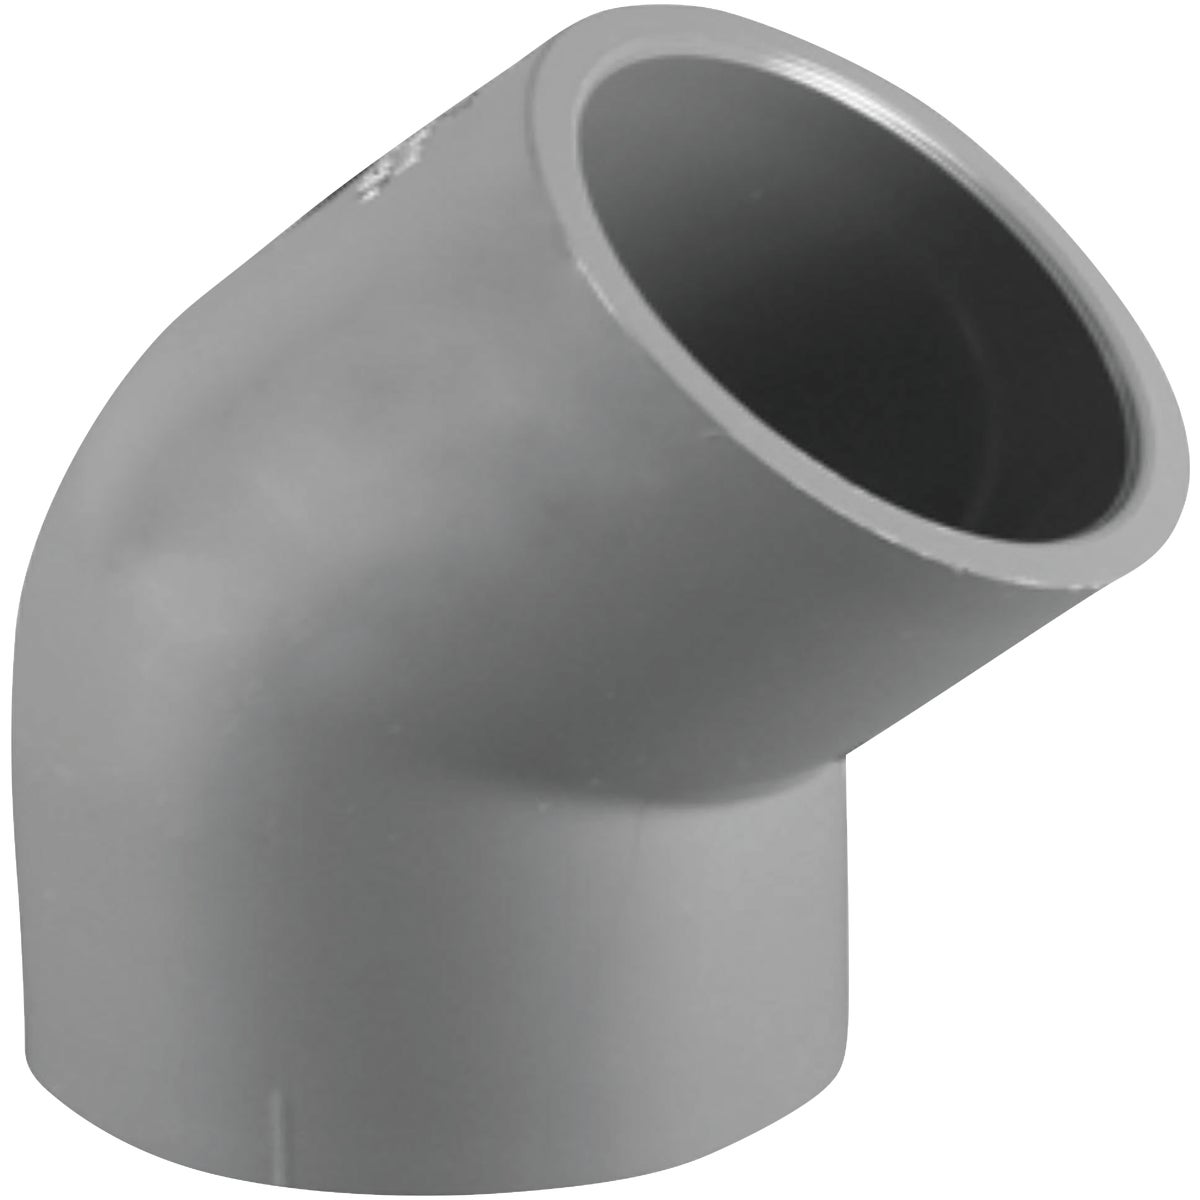 "3/4"" 45D SCH80 PVC ELBOW - 306078 by Genova Inc"